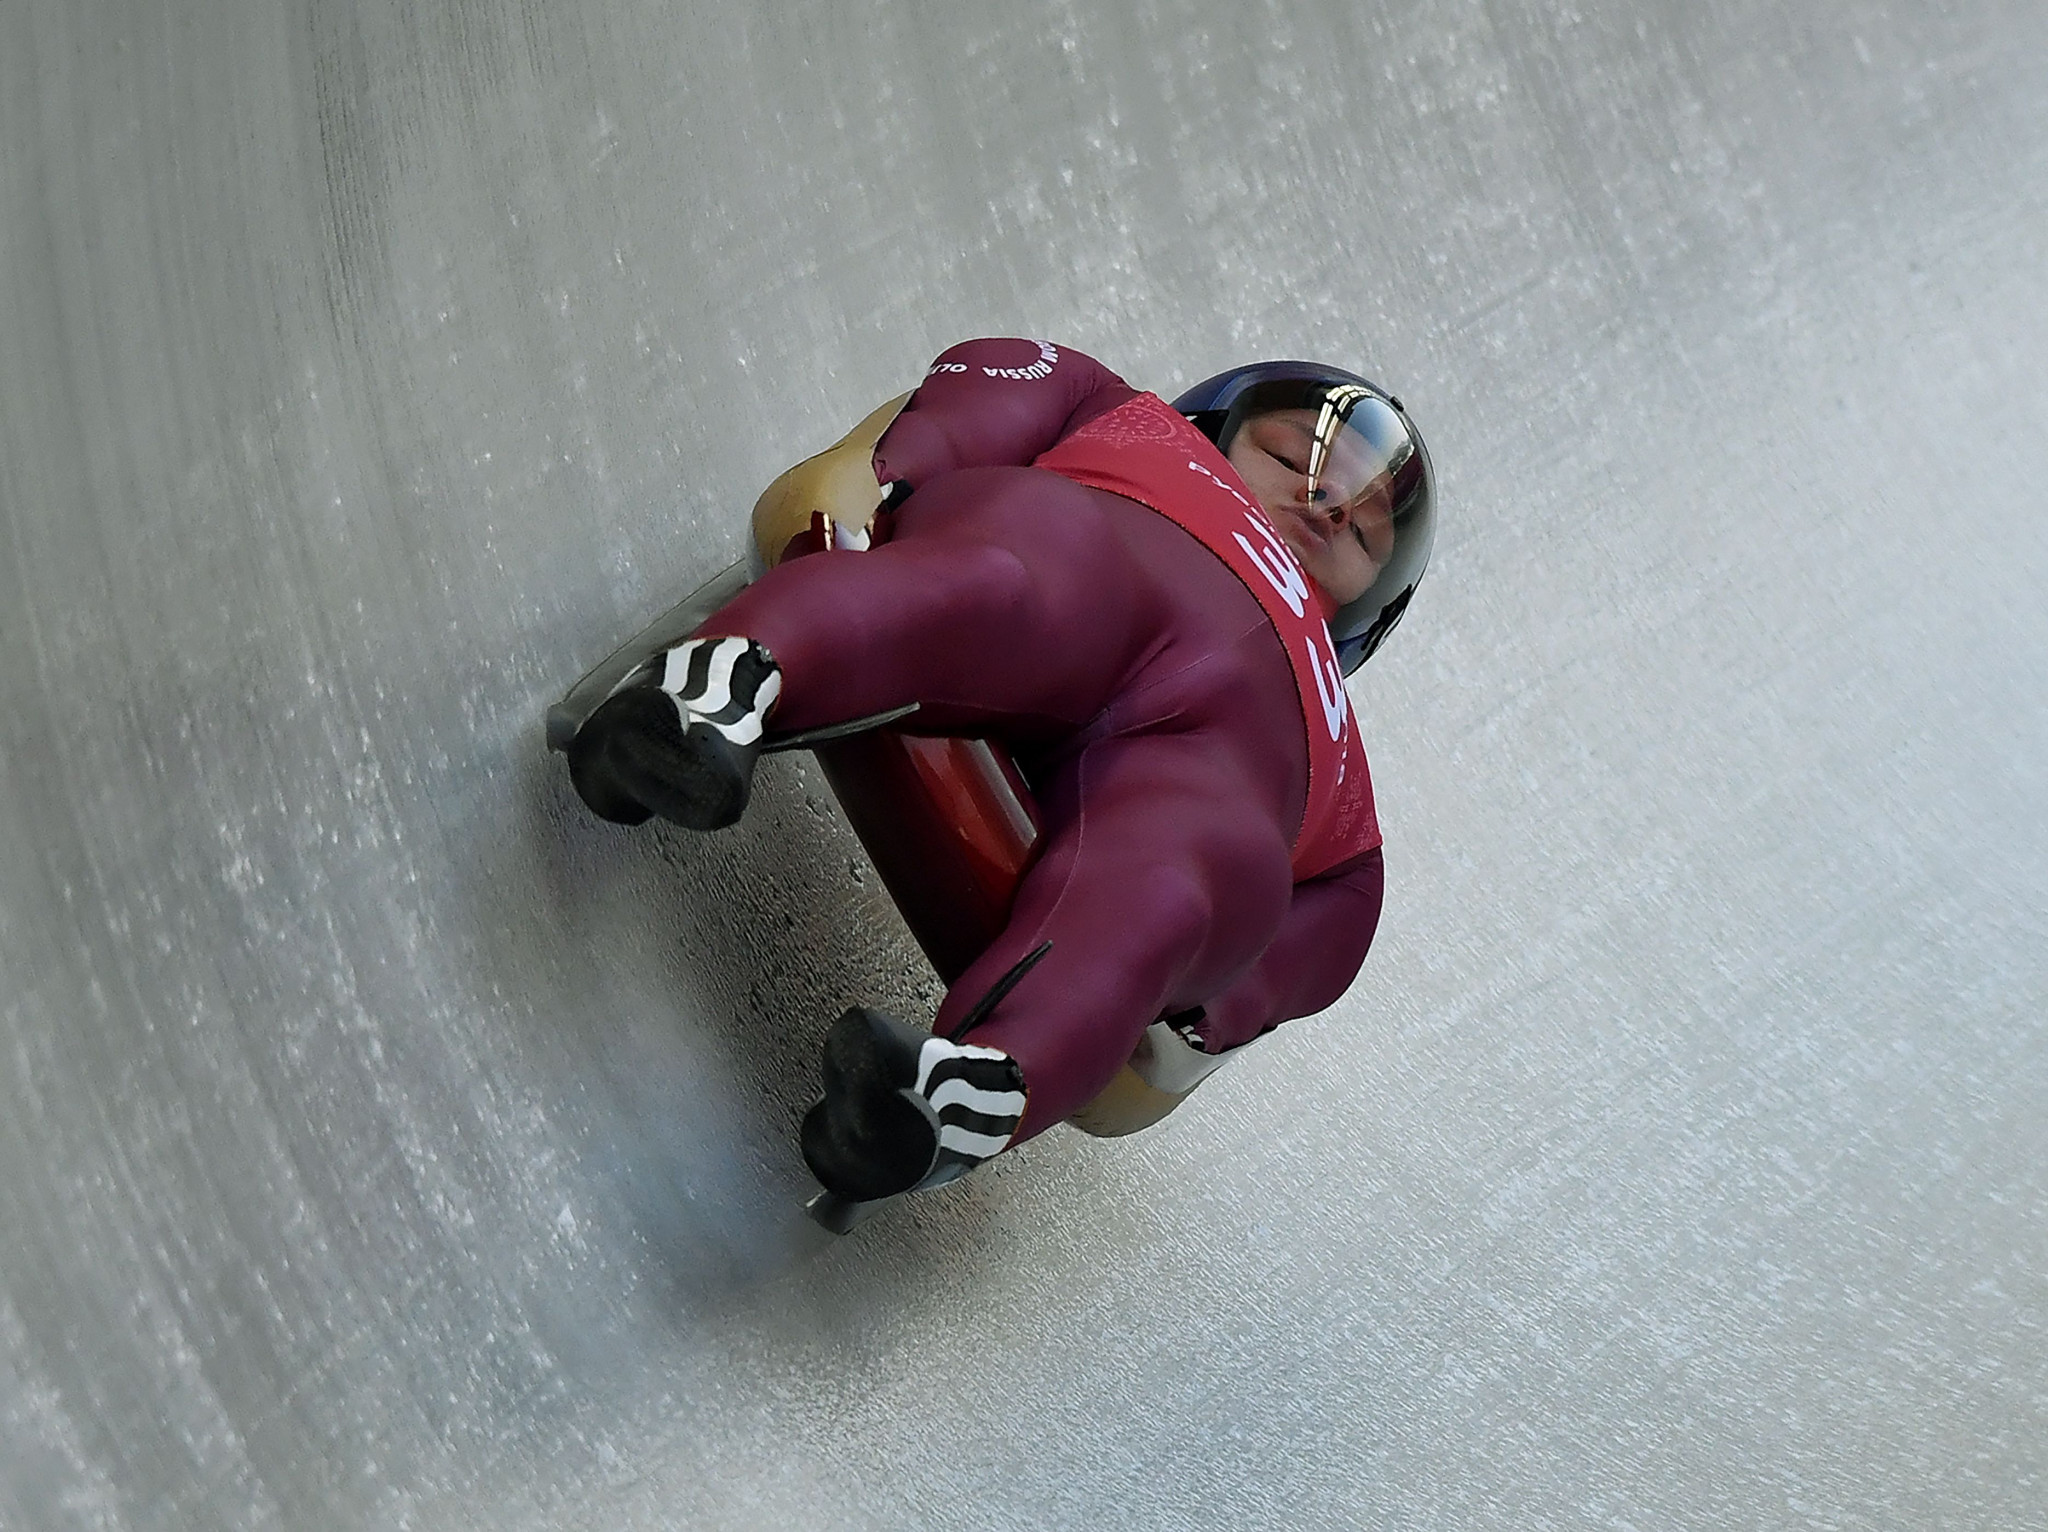 Roman Repilov won the men's sprint title at the FIL Luge World Championships ©Getty Images